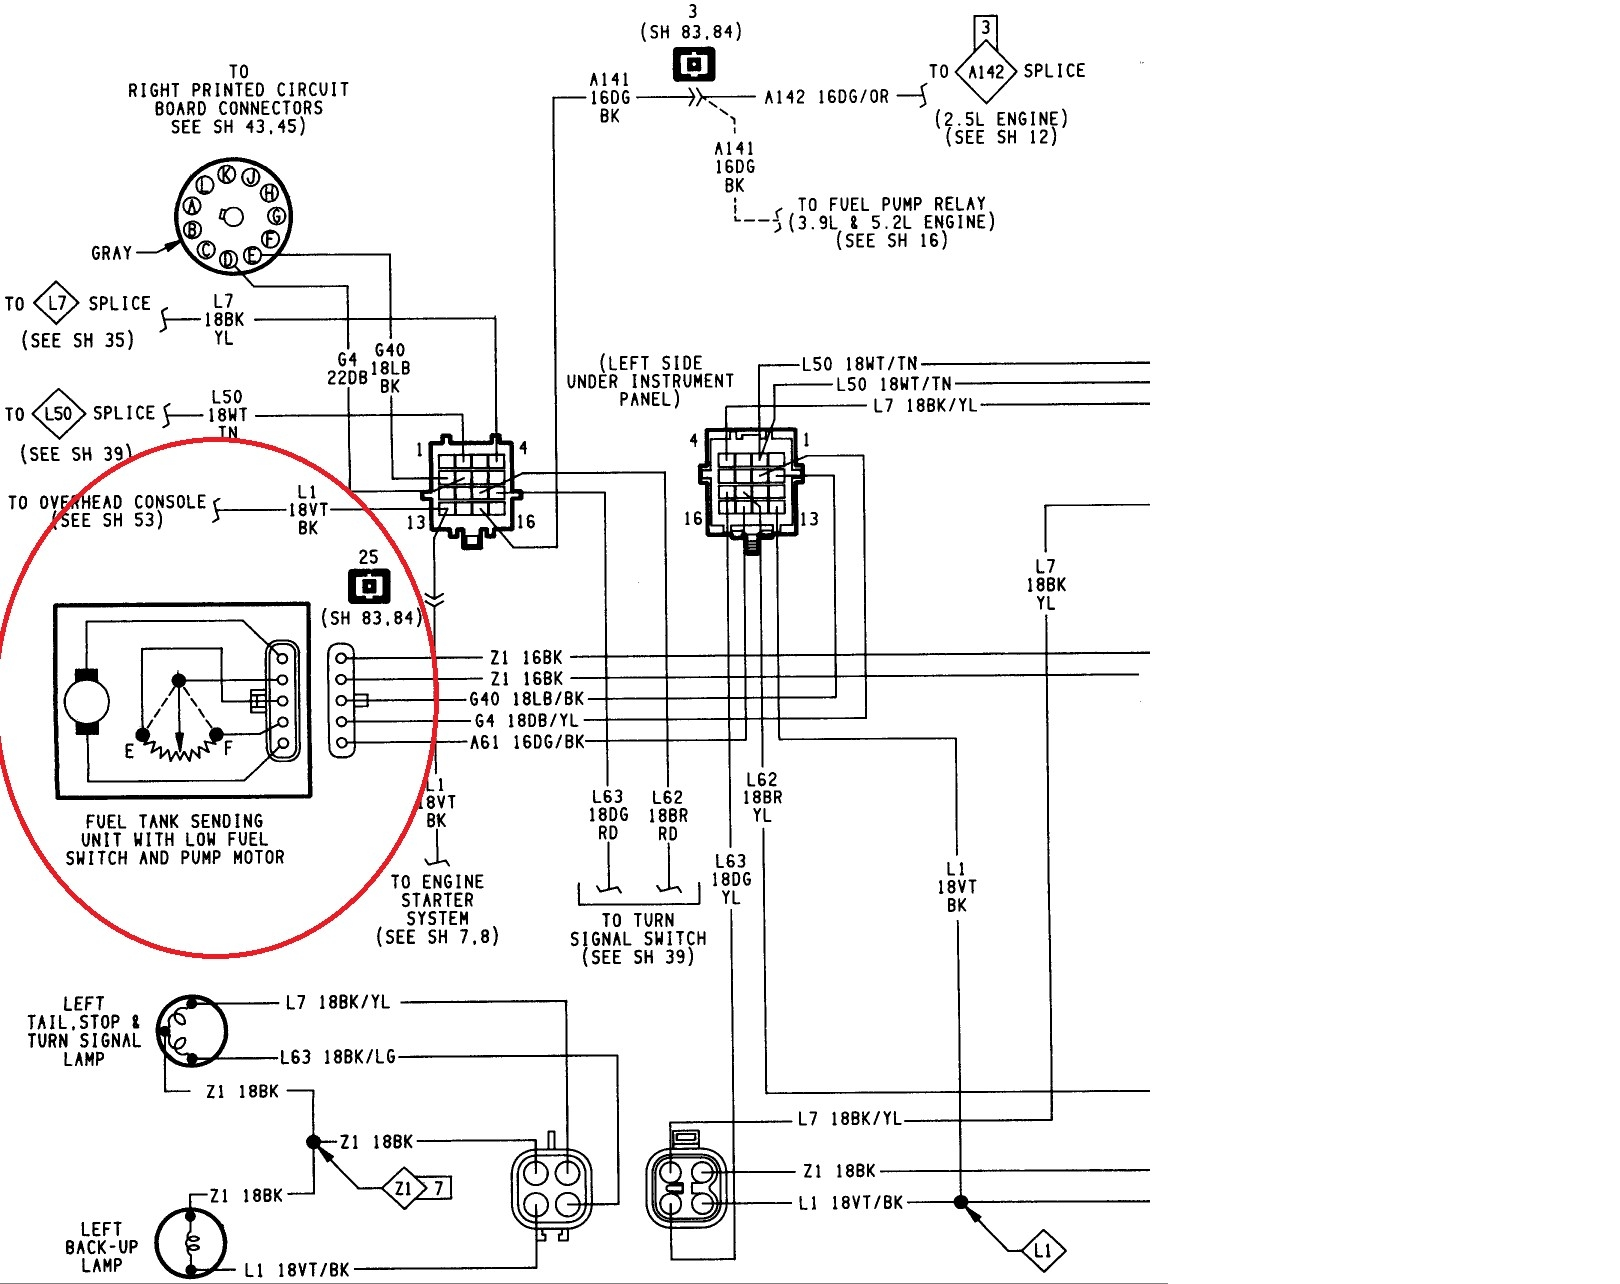 fuel gauge sending unit wiring diagram | free wiring diagram 69 mustang fuel tank wiring diagram free download 1990 ford mustang wiring diagram free download #14